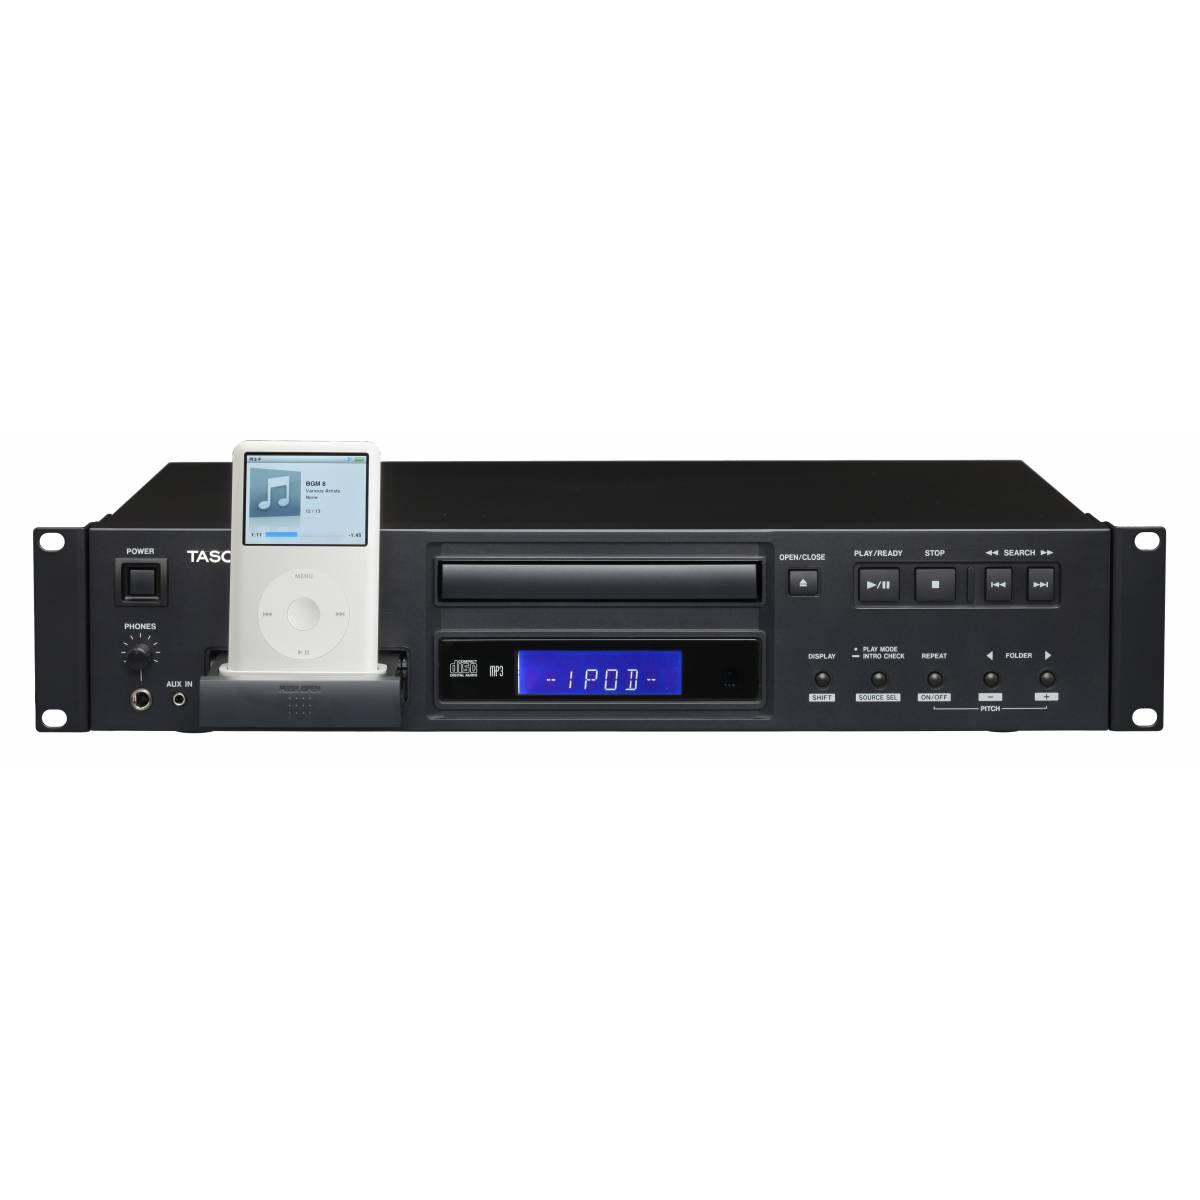 digital audio player and mp3 View and download philips gogear digital audio player user manual online philips user manual digital audio player gogear digital audio player mp3 player pdf manual download.